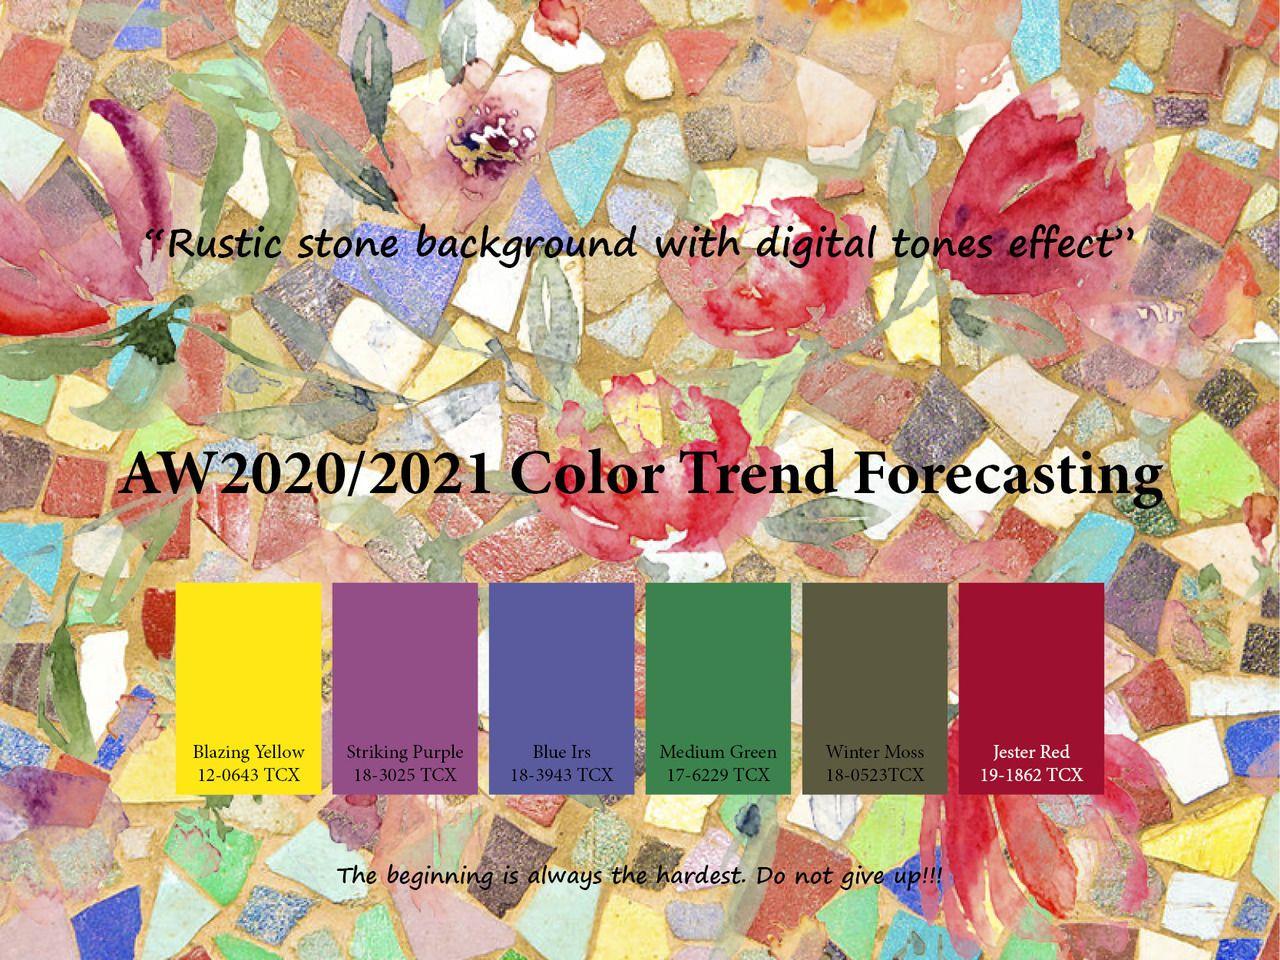 AW5/5 Trend forecasting - Rustic stone background with